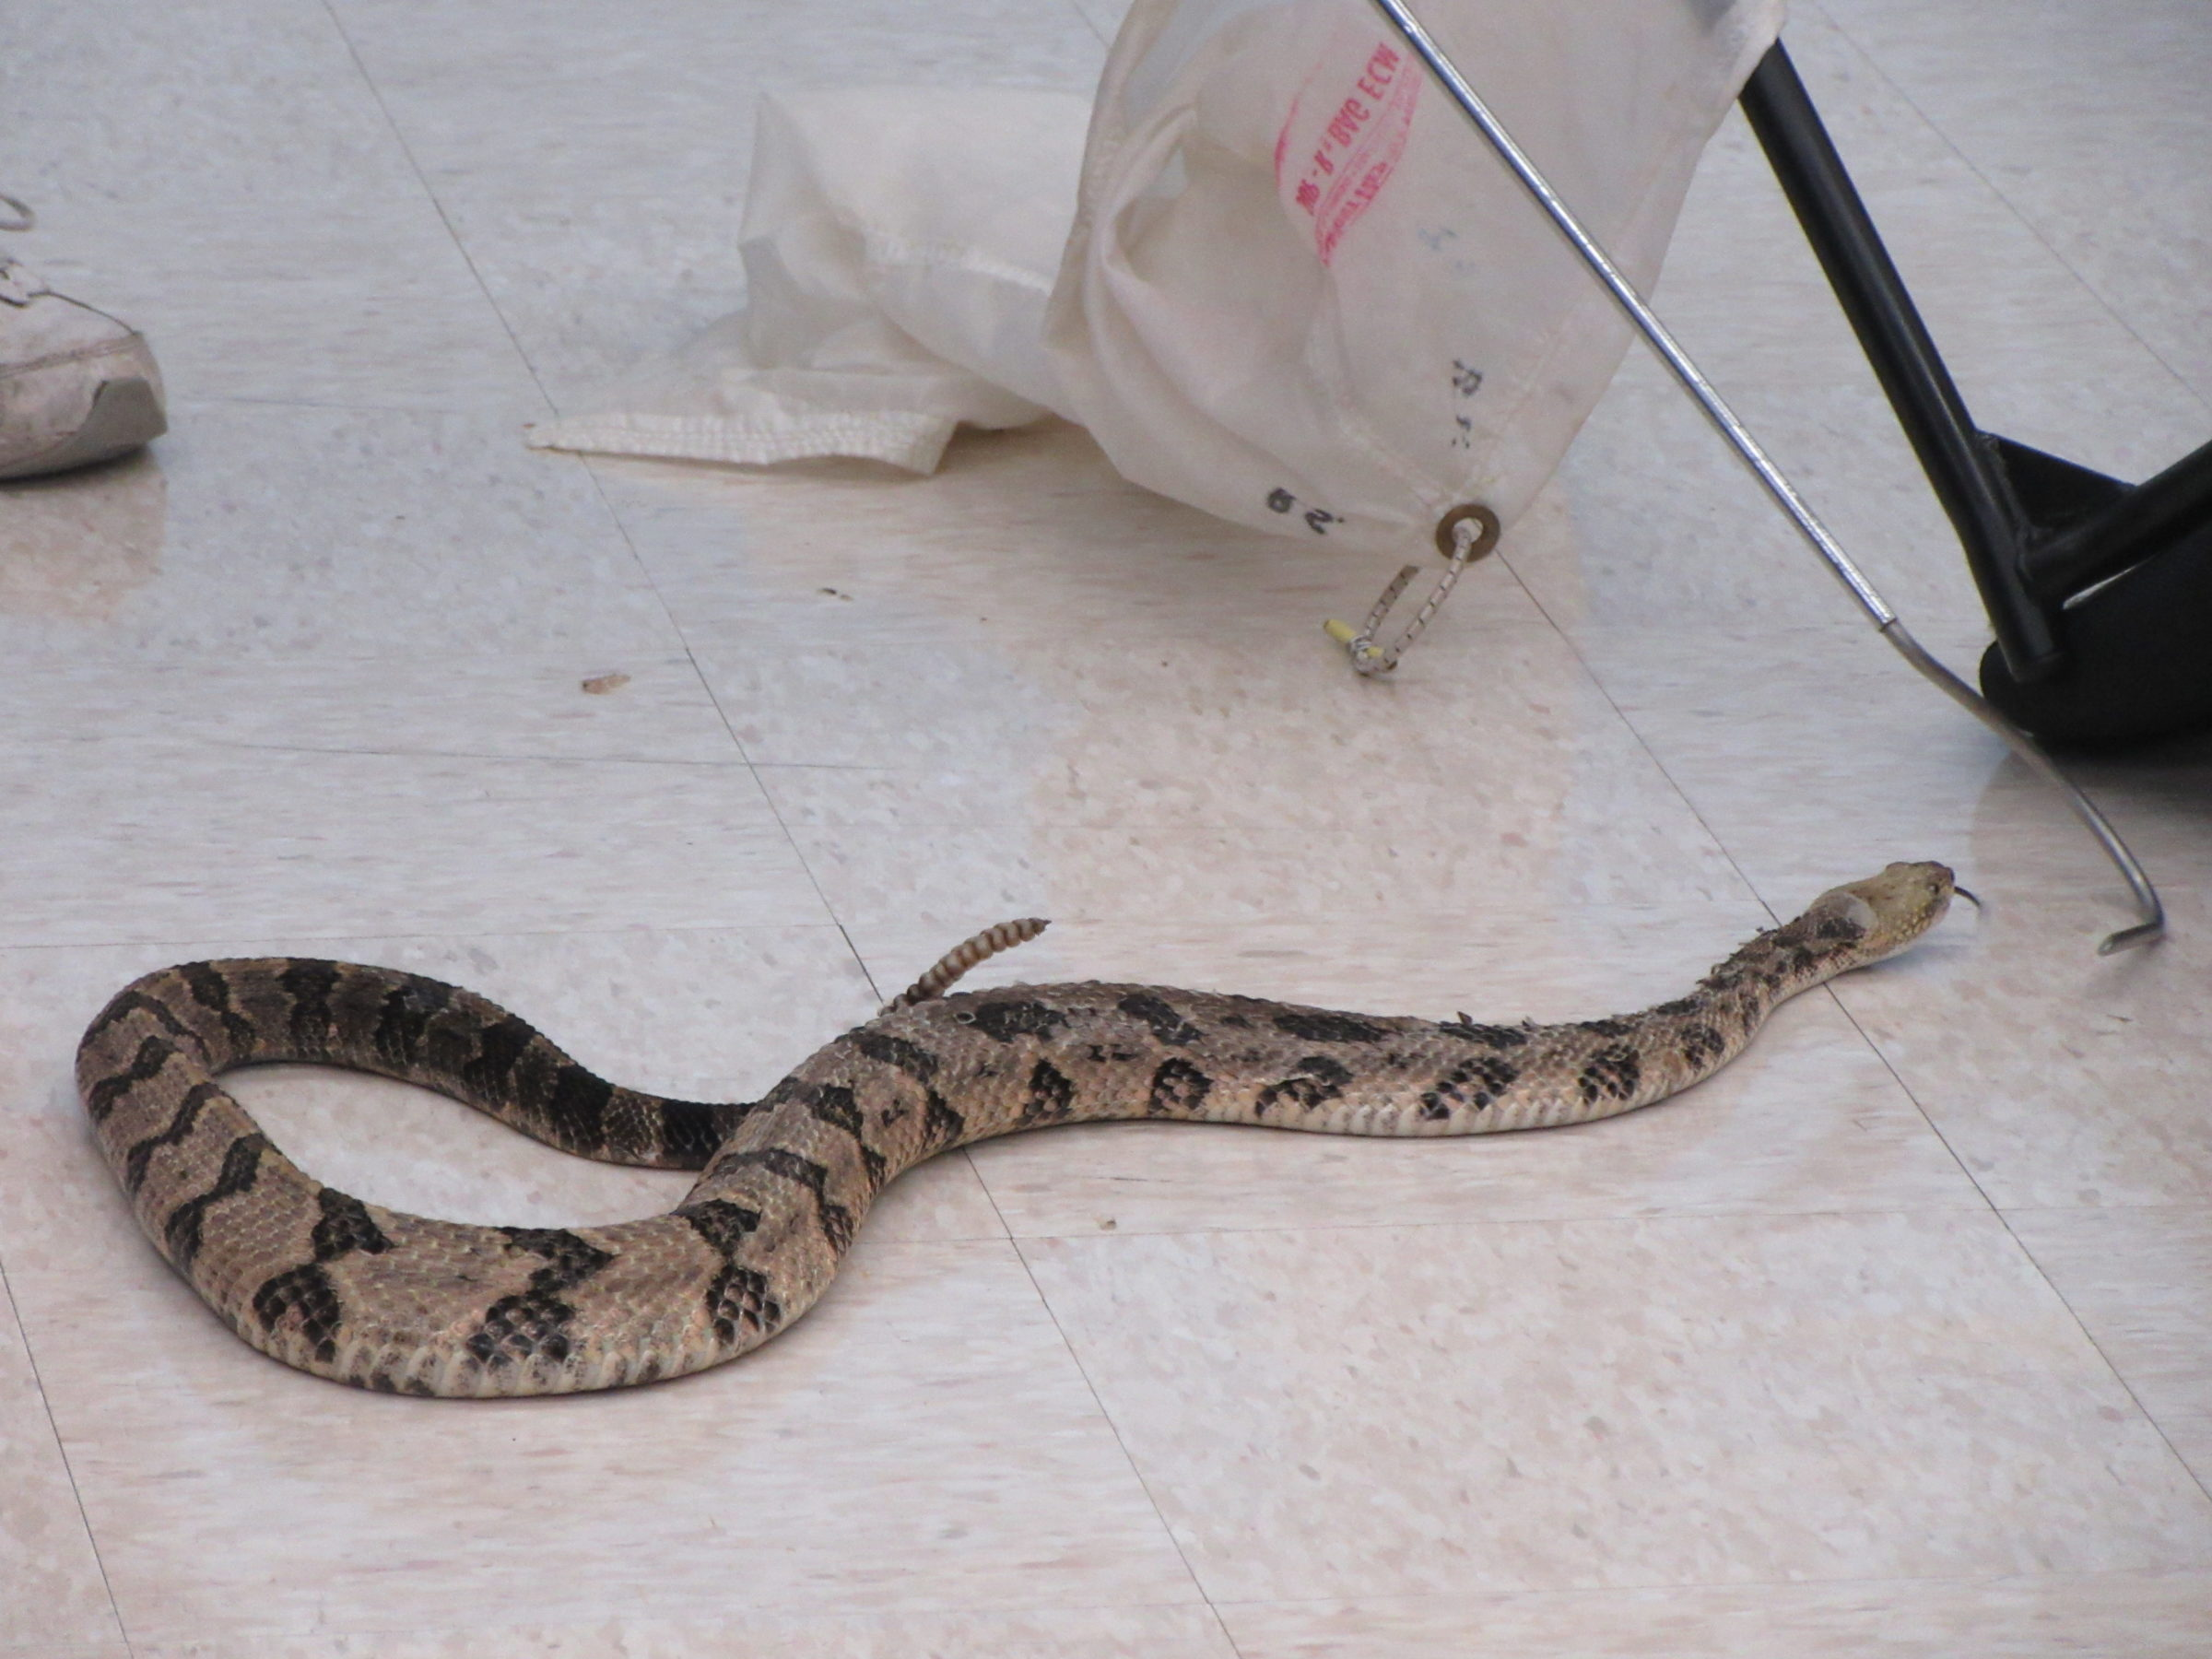 Randy Stechert Habits and Habitats of Venomous Snakes presentation